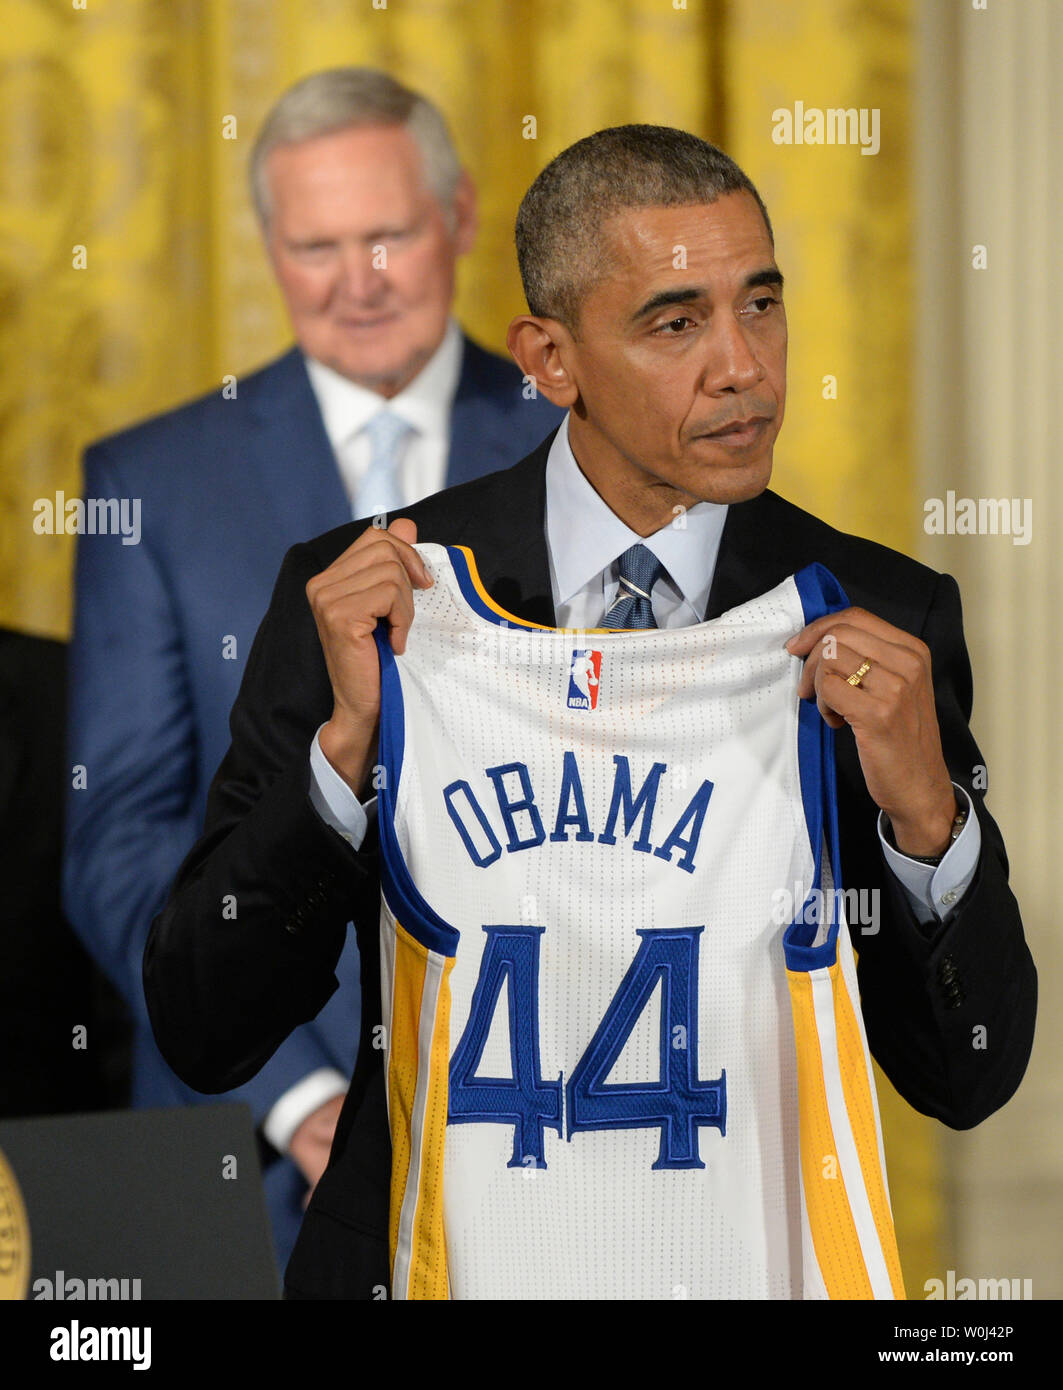 U S President Barack Obama Holds Up A Team Jersey As He Honors The 2015 Nba Champions Golden State Warriors In The East Room Of The White House In Washington Dc On February